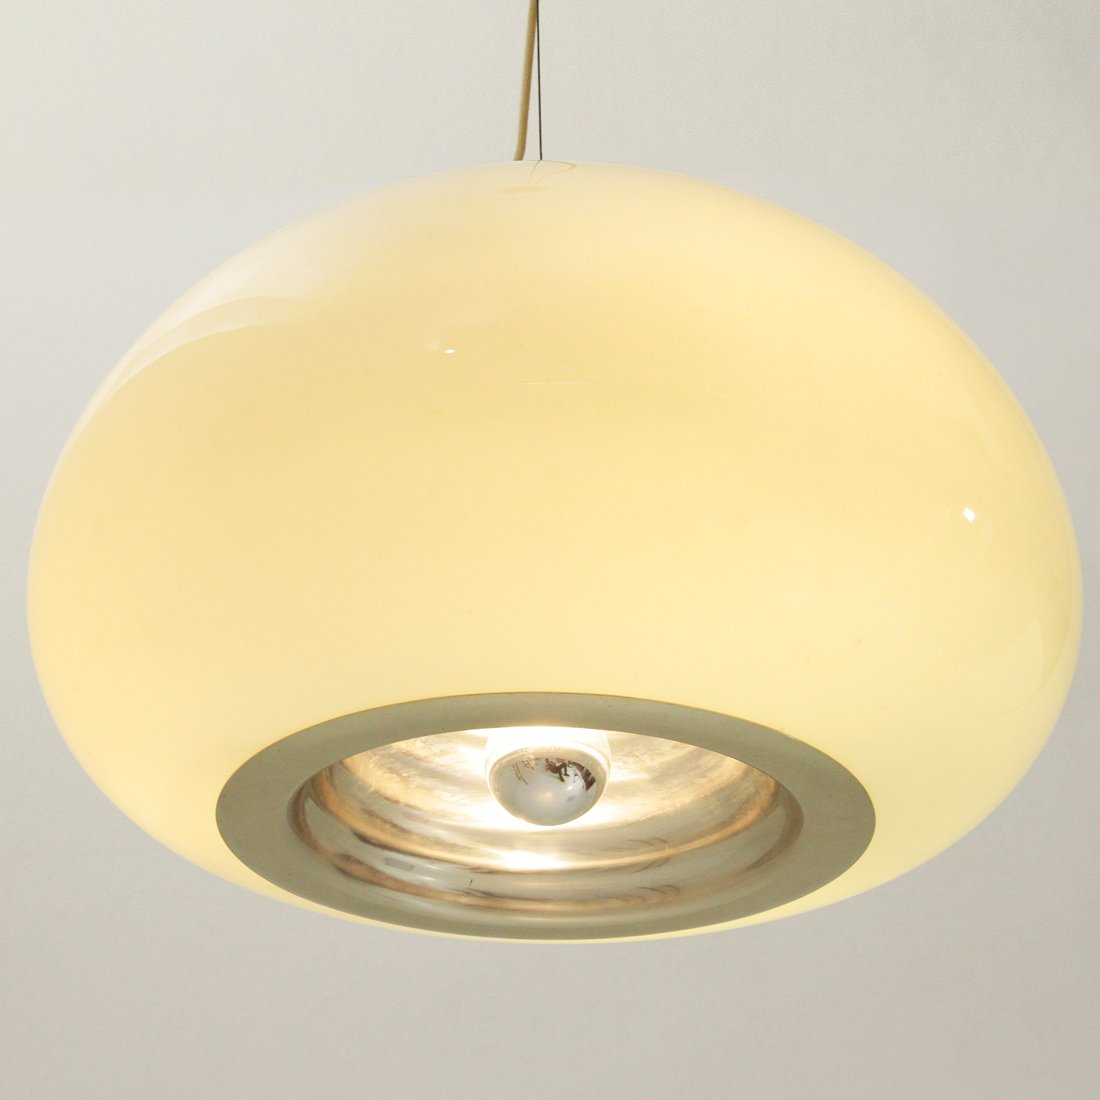 Opaline Glass Pendant Lamp by Castiglioni Brothers for Flos 1960s